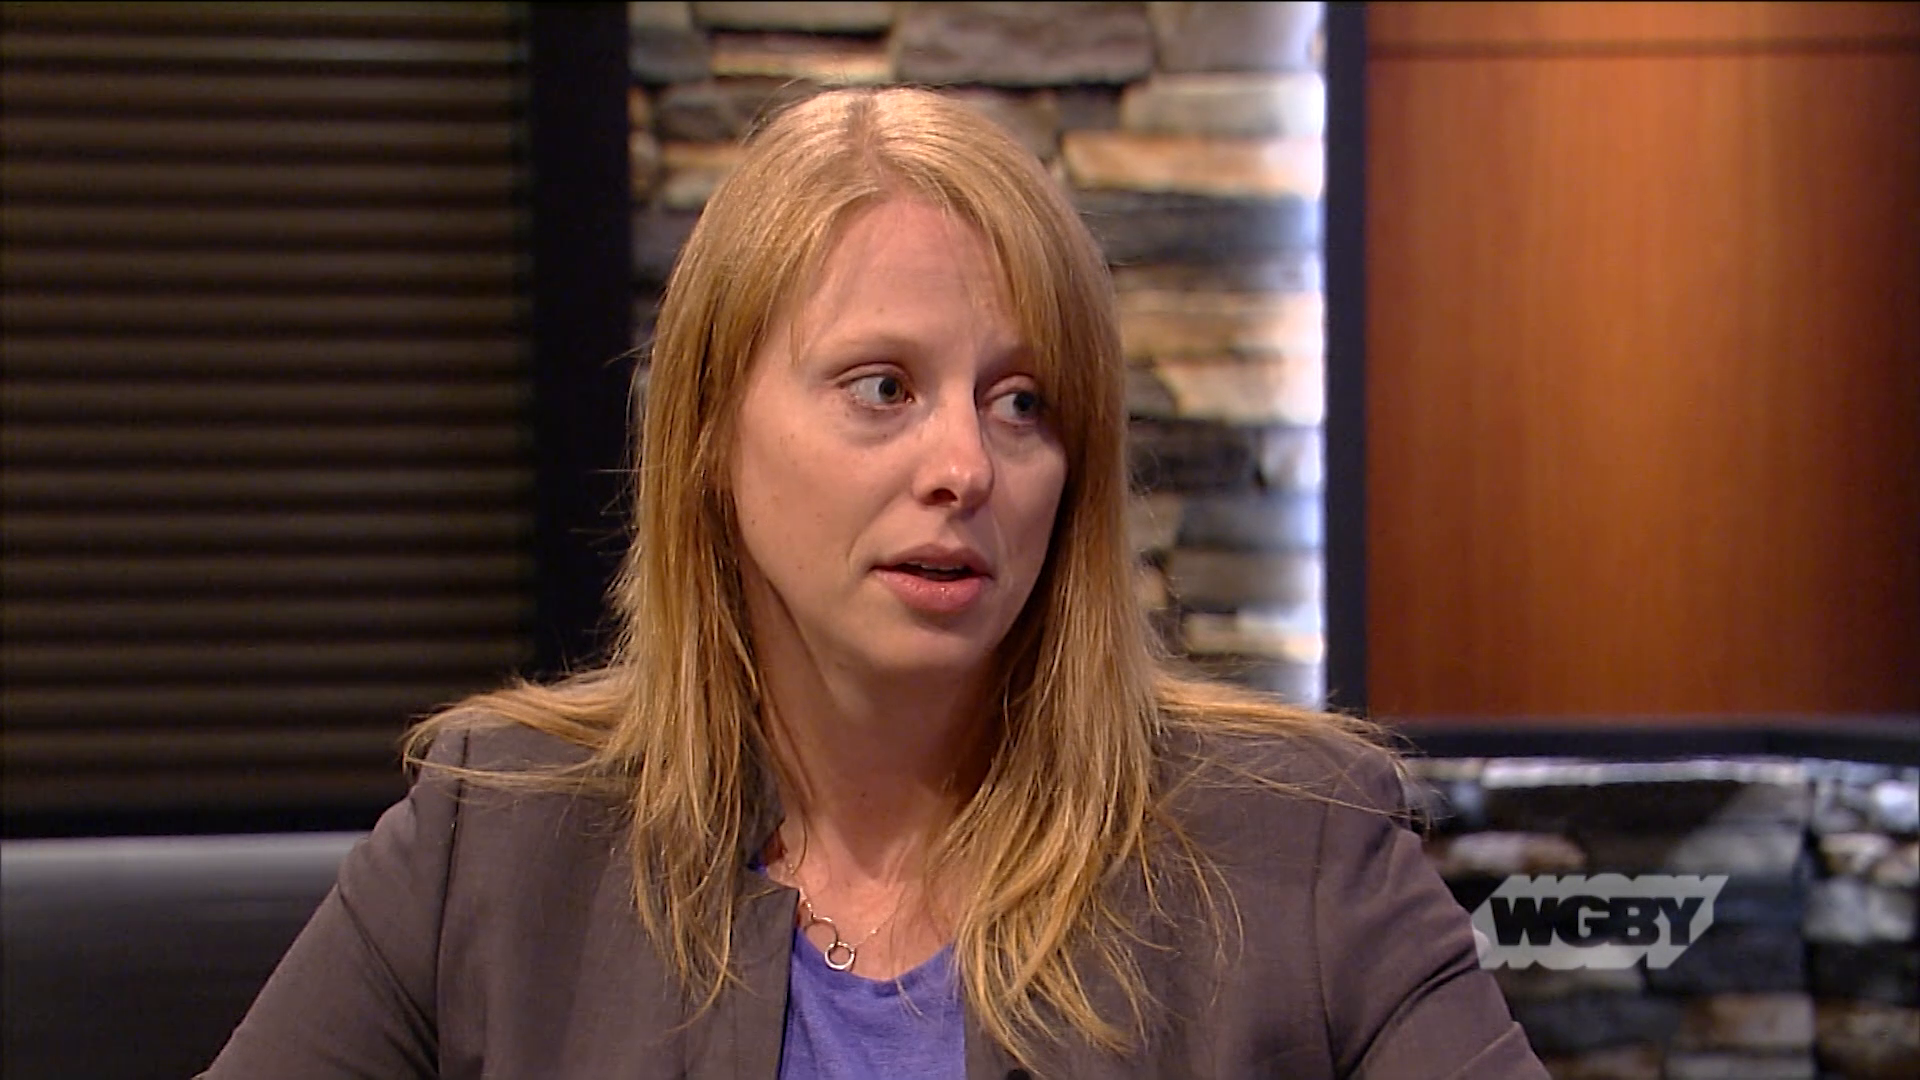 Tapestry Health's Liz Whynott shares her view on the Springfield Needle Exchange, and how the controversial program may help save lives.